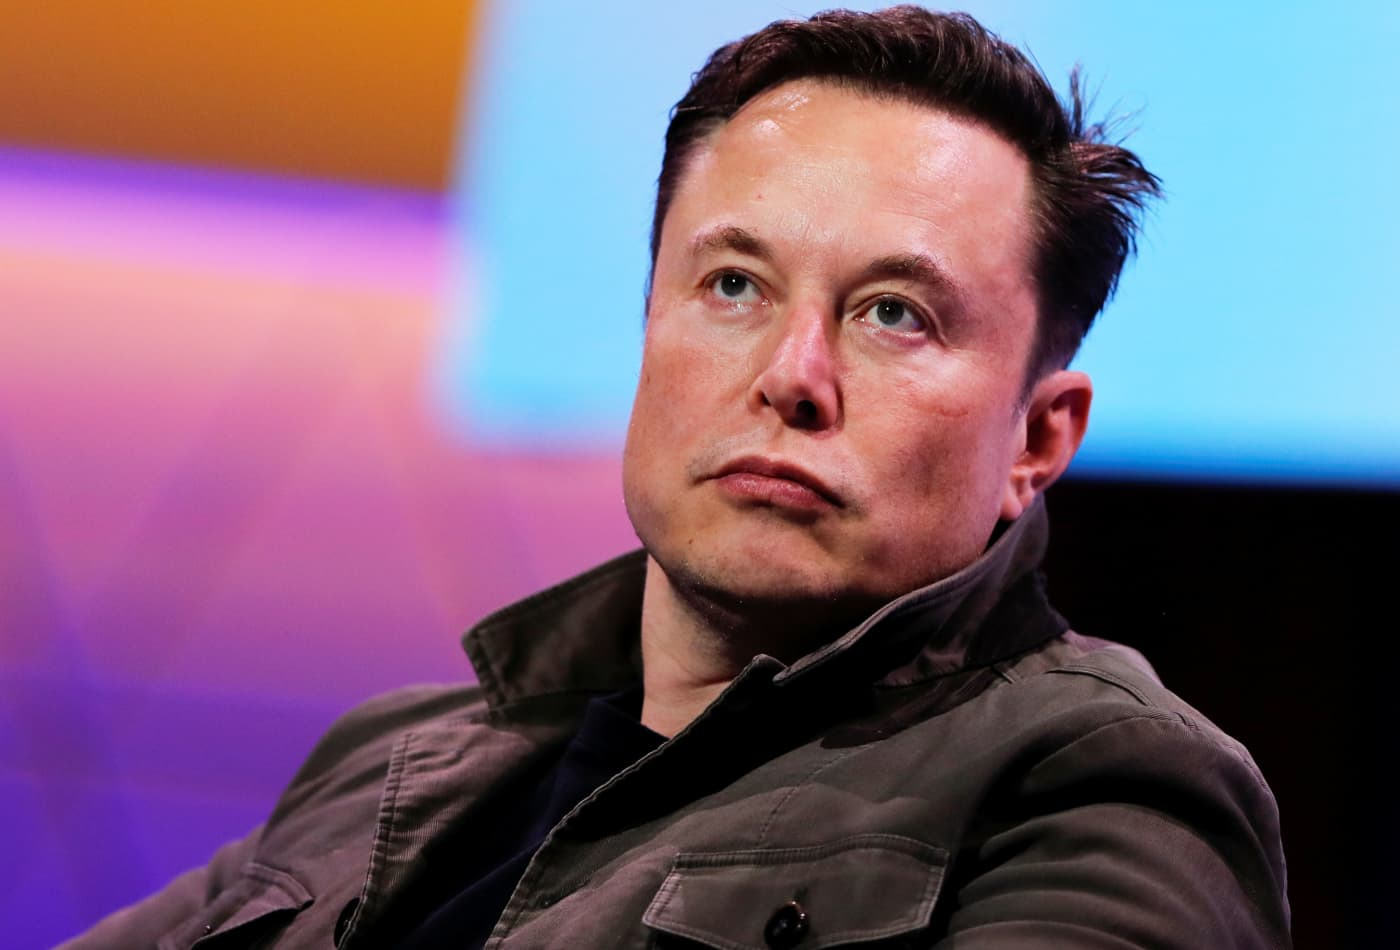 Why Elon Musk called an all-hands meeting at 1 in the morning on a Sunday (and what it says about him)